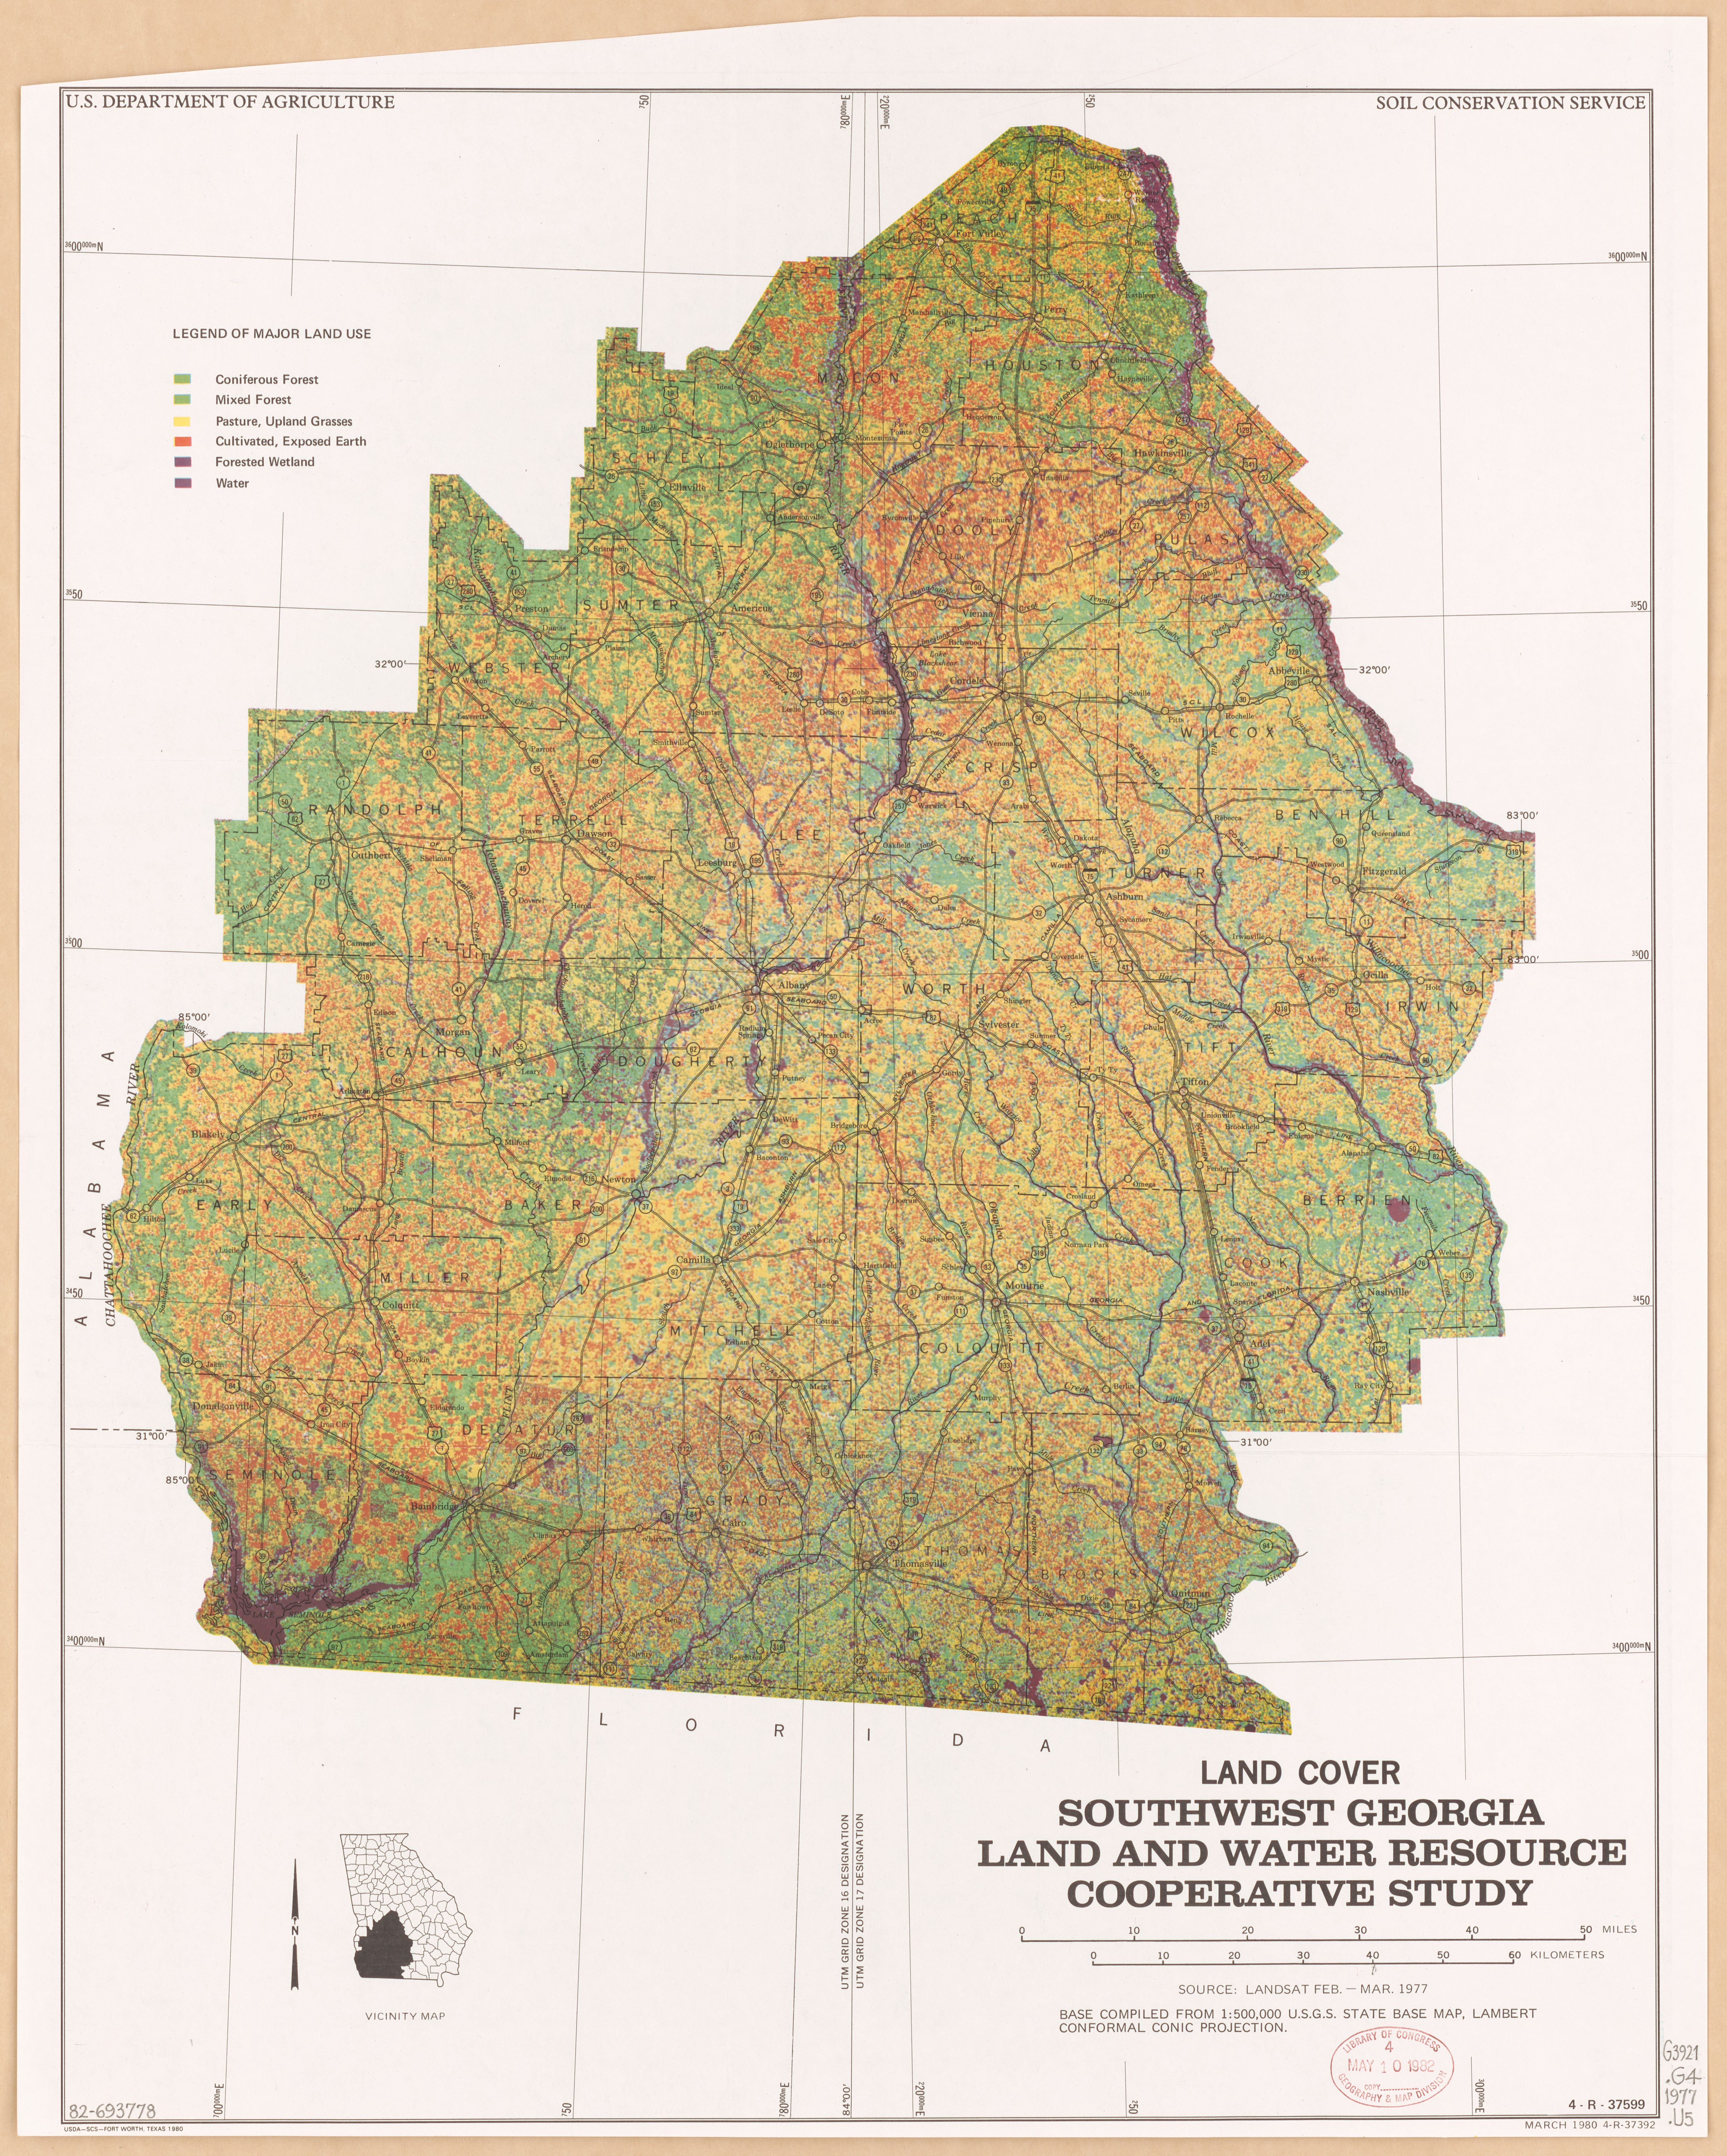 Map Of Southwest Georgia.File Land Cover Southwest Georgia Land And Water Resource